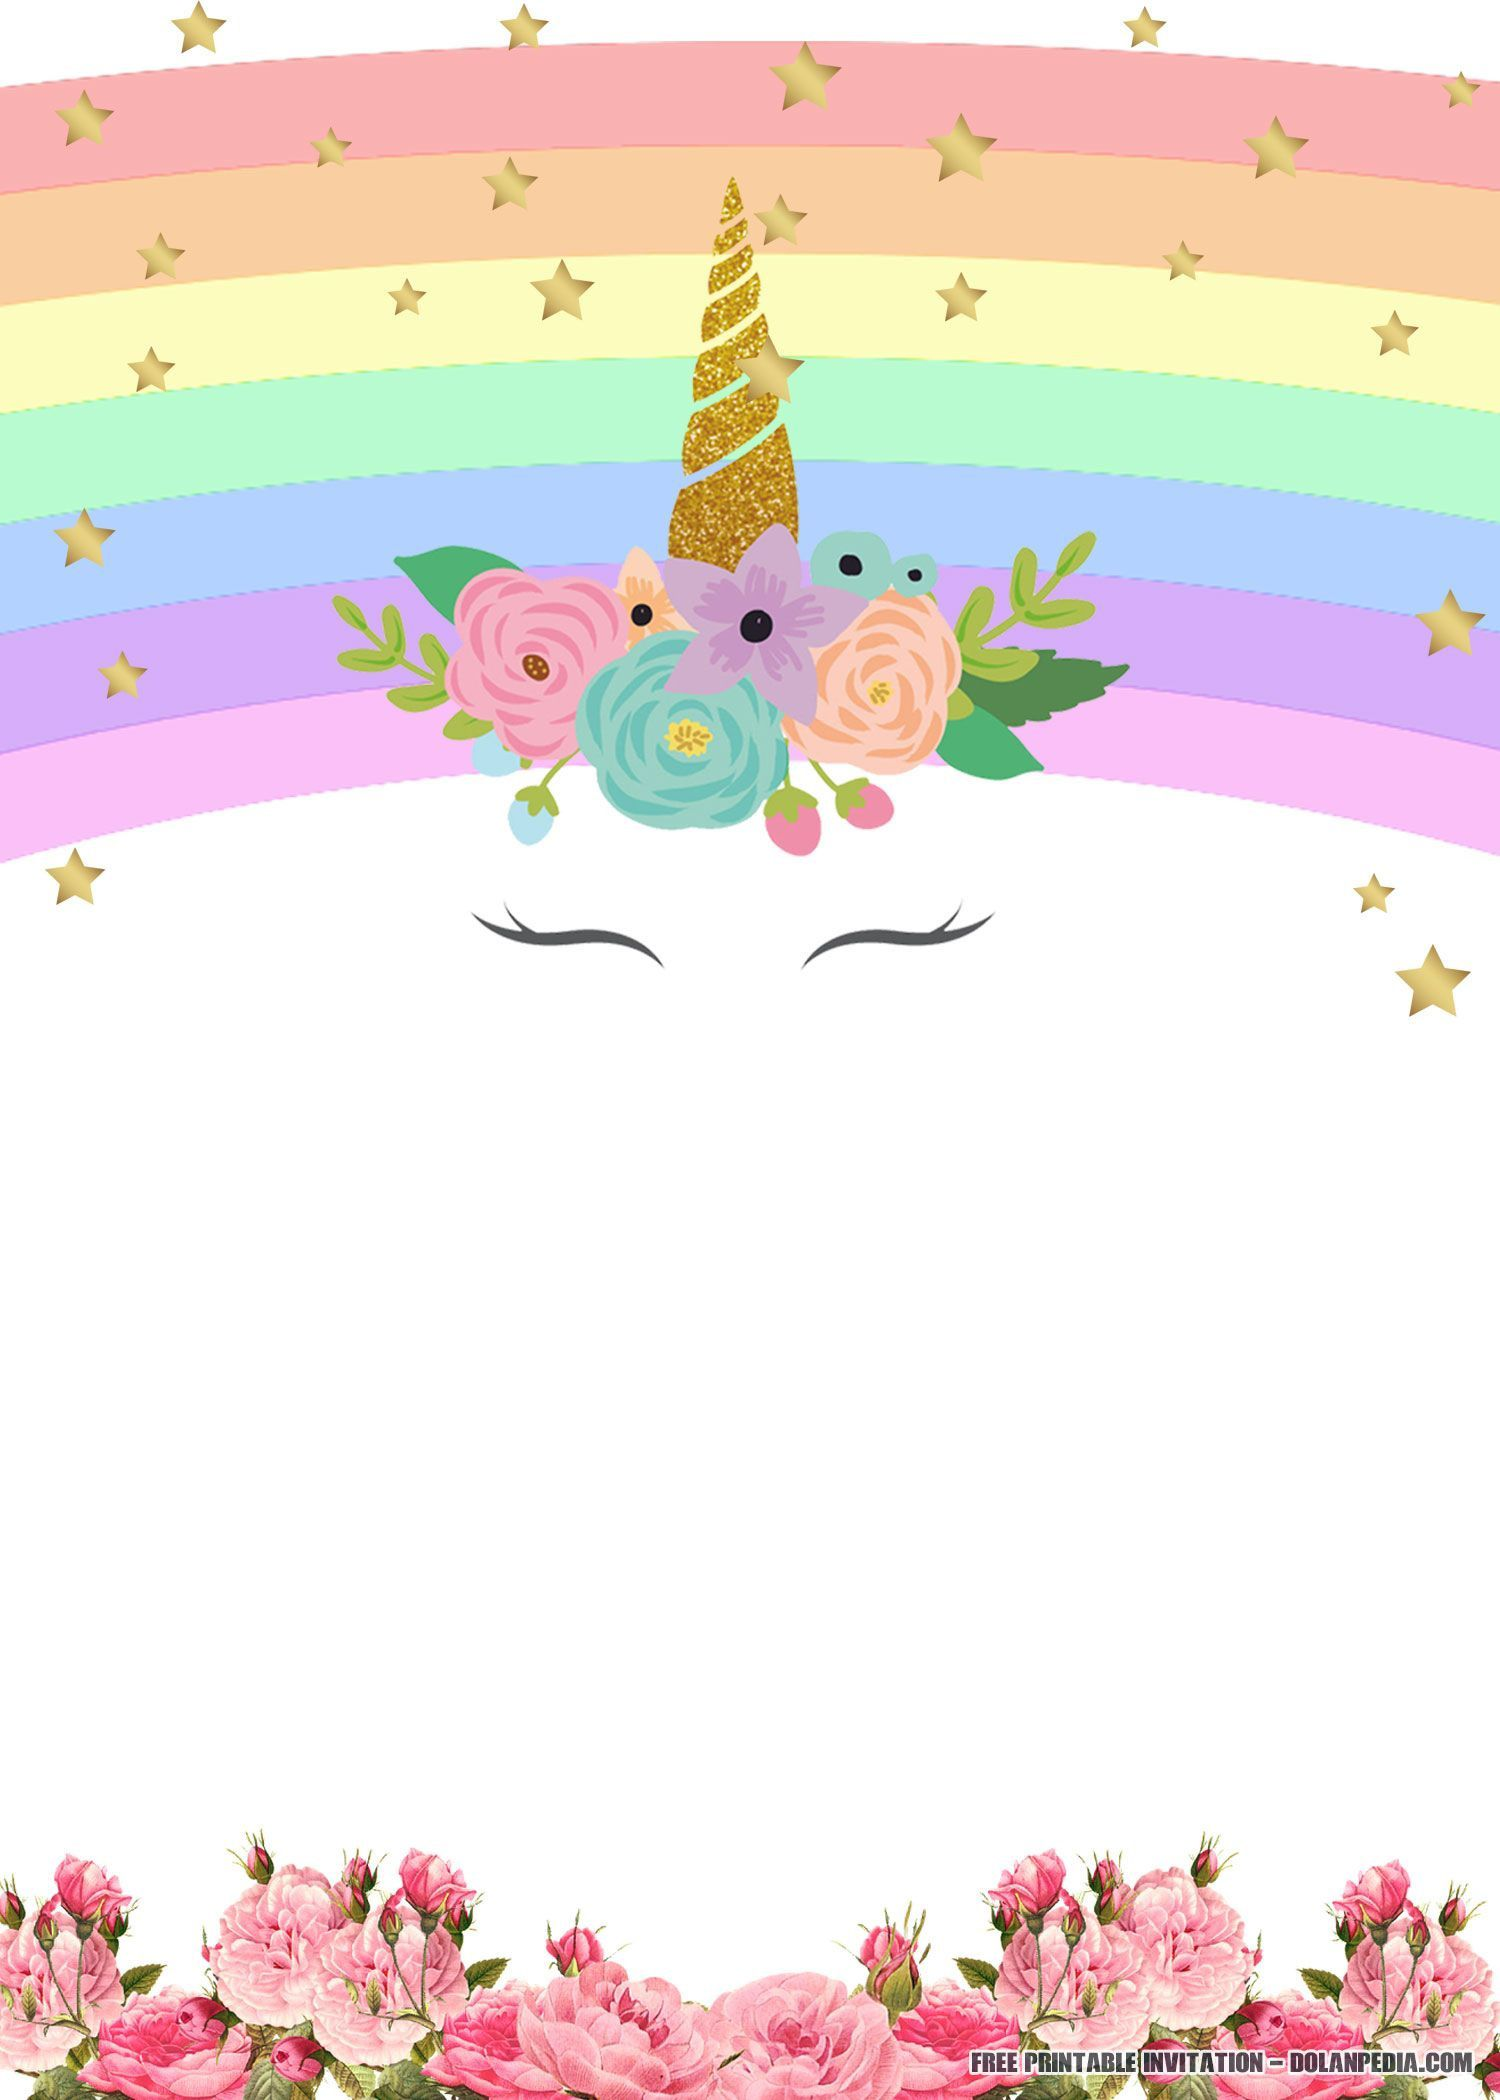 003 Formidable Unicorn Baby Shower Template Free Download Image  Printable InvitationFull